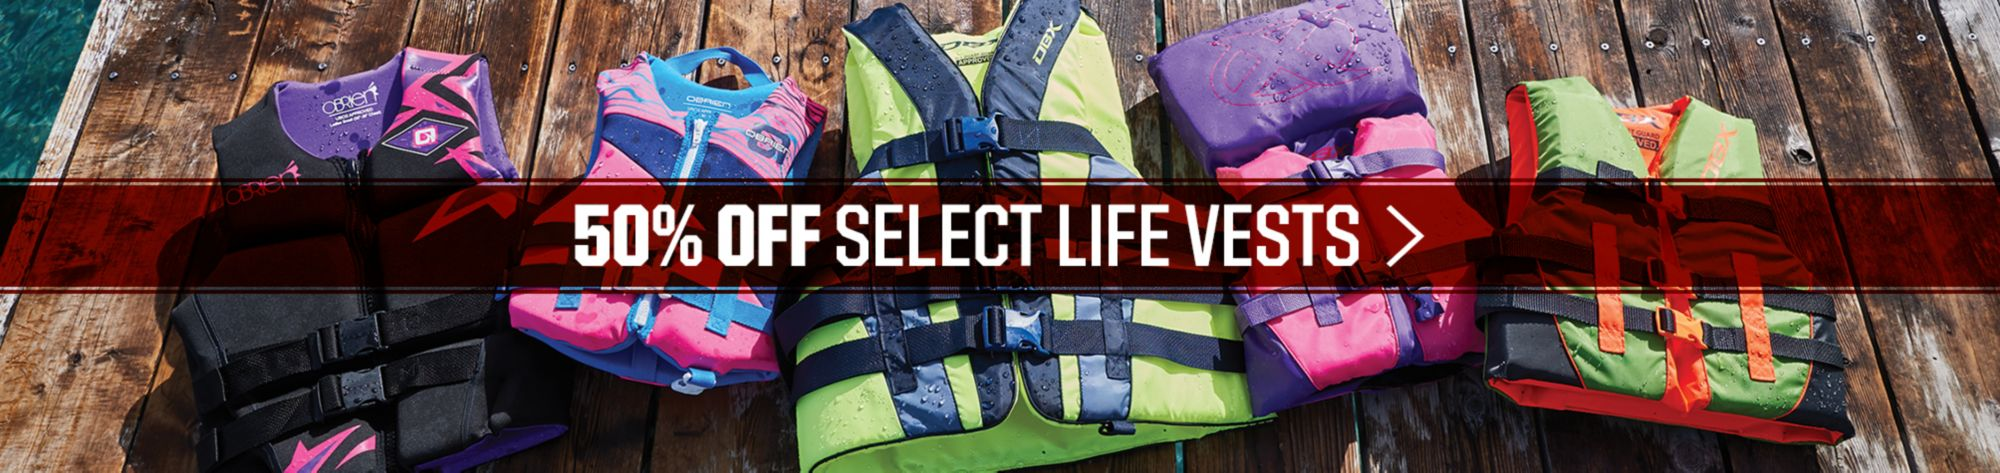 50% Off Life Vests